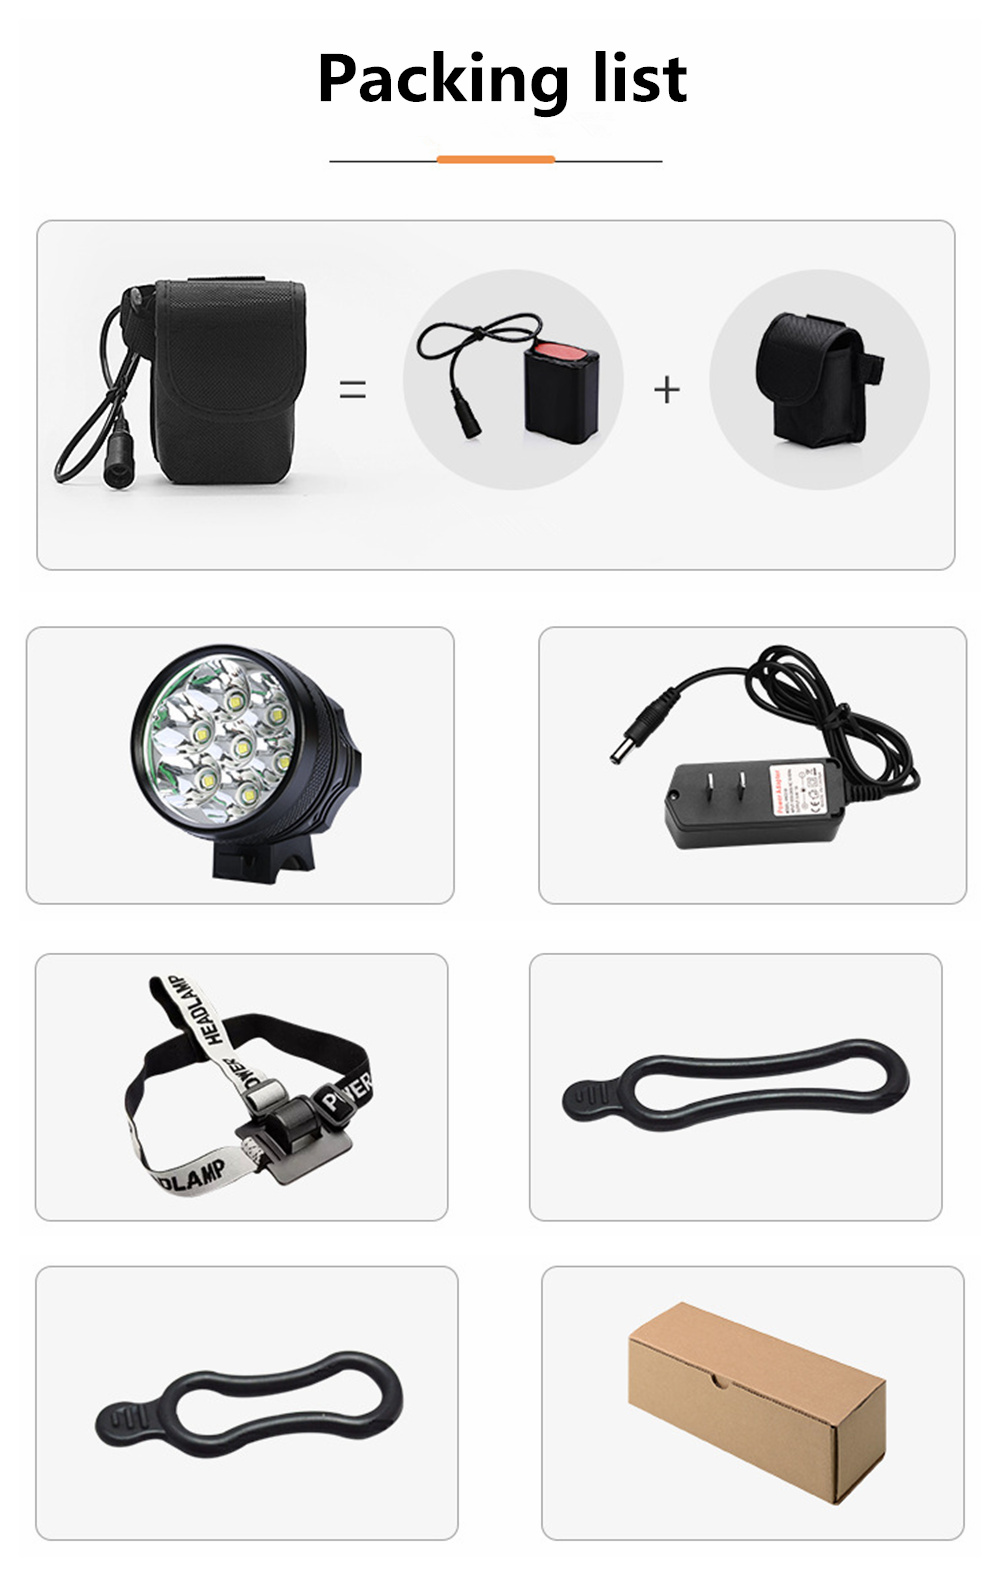 ZHISHUNJIA ZSJ-007 High-brightness 7LED Bicycle Lamp Waterproof Car Lamp- Red